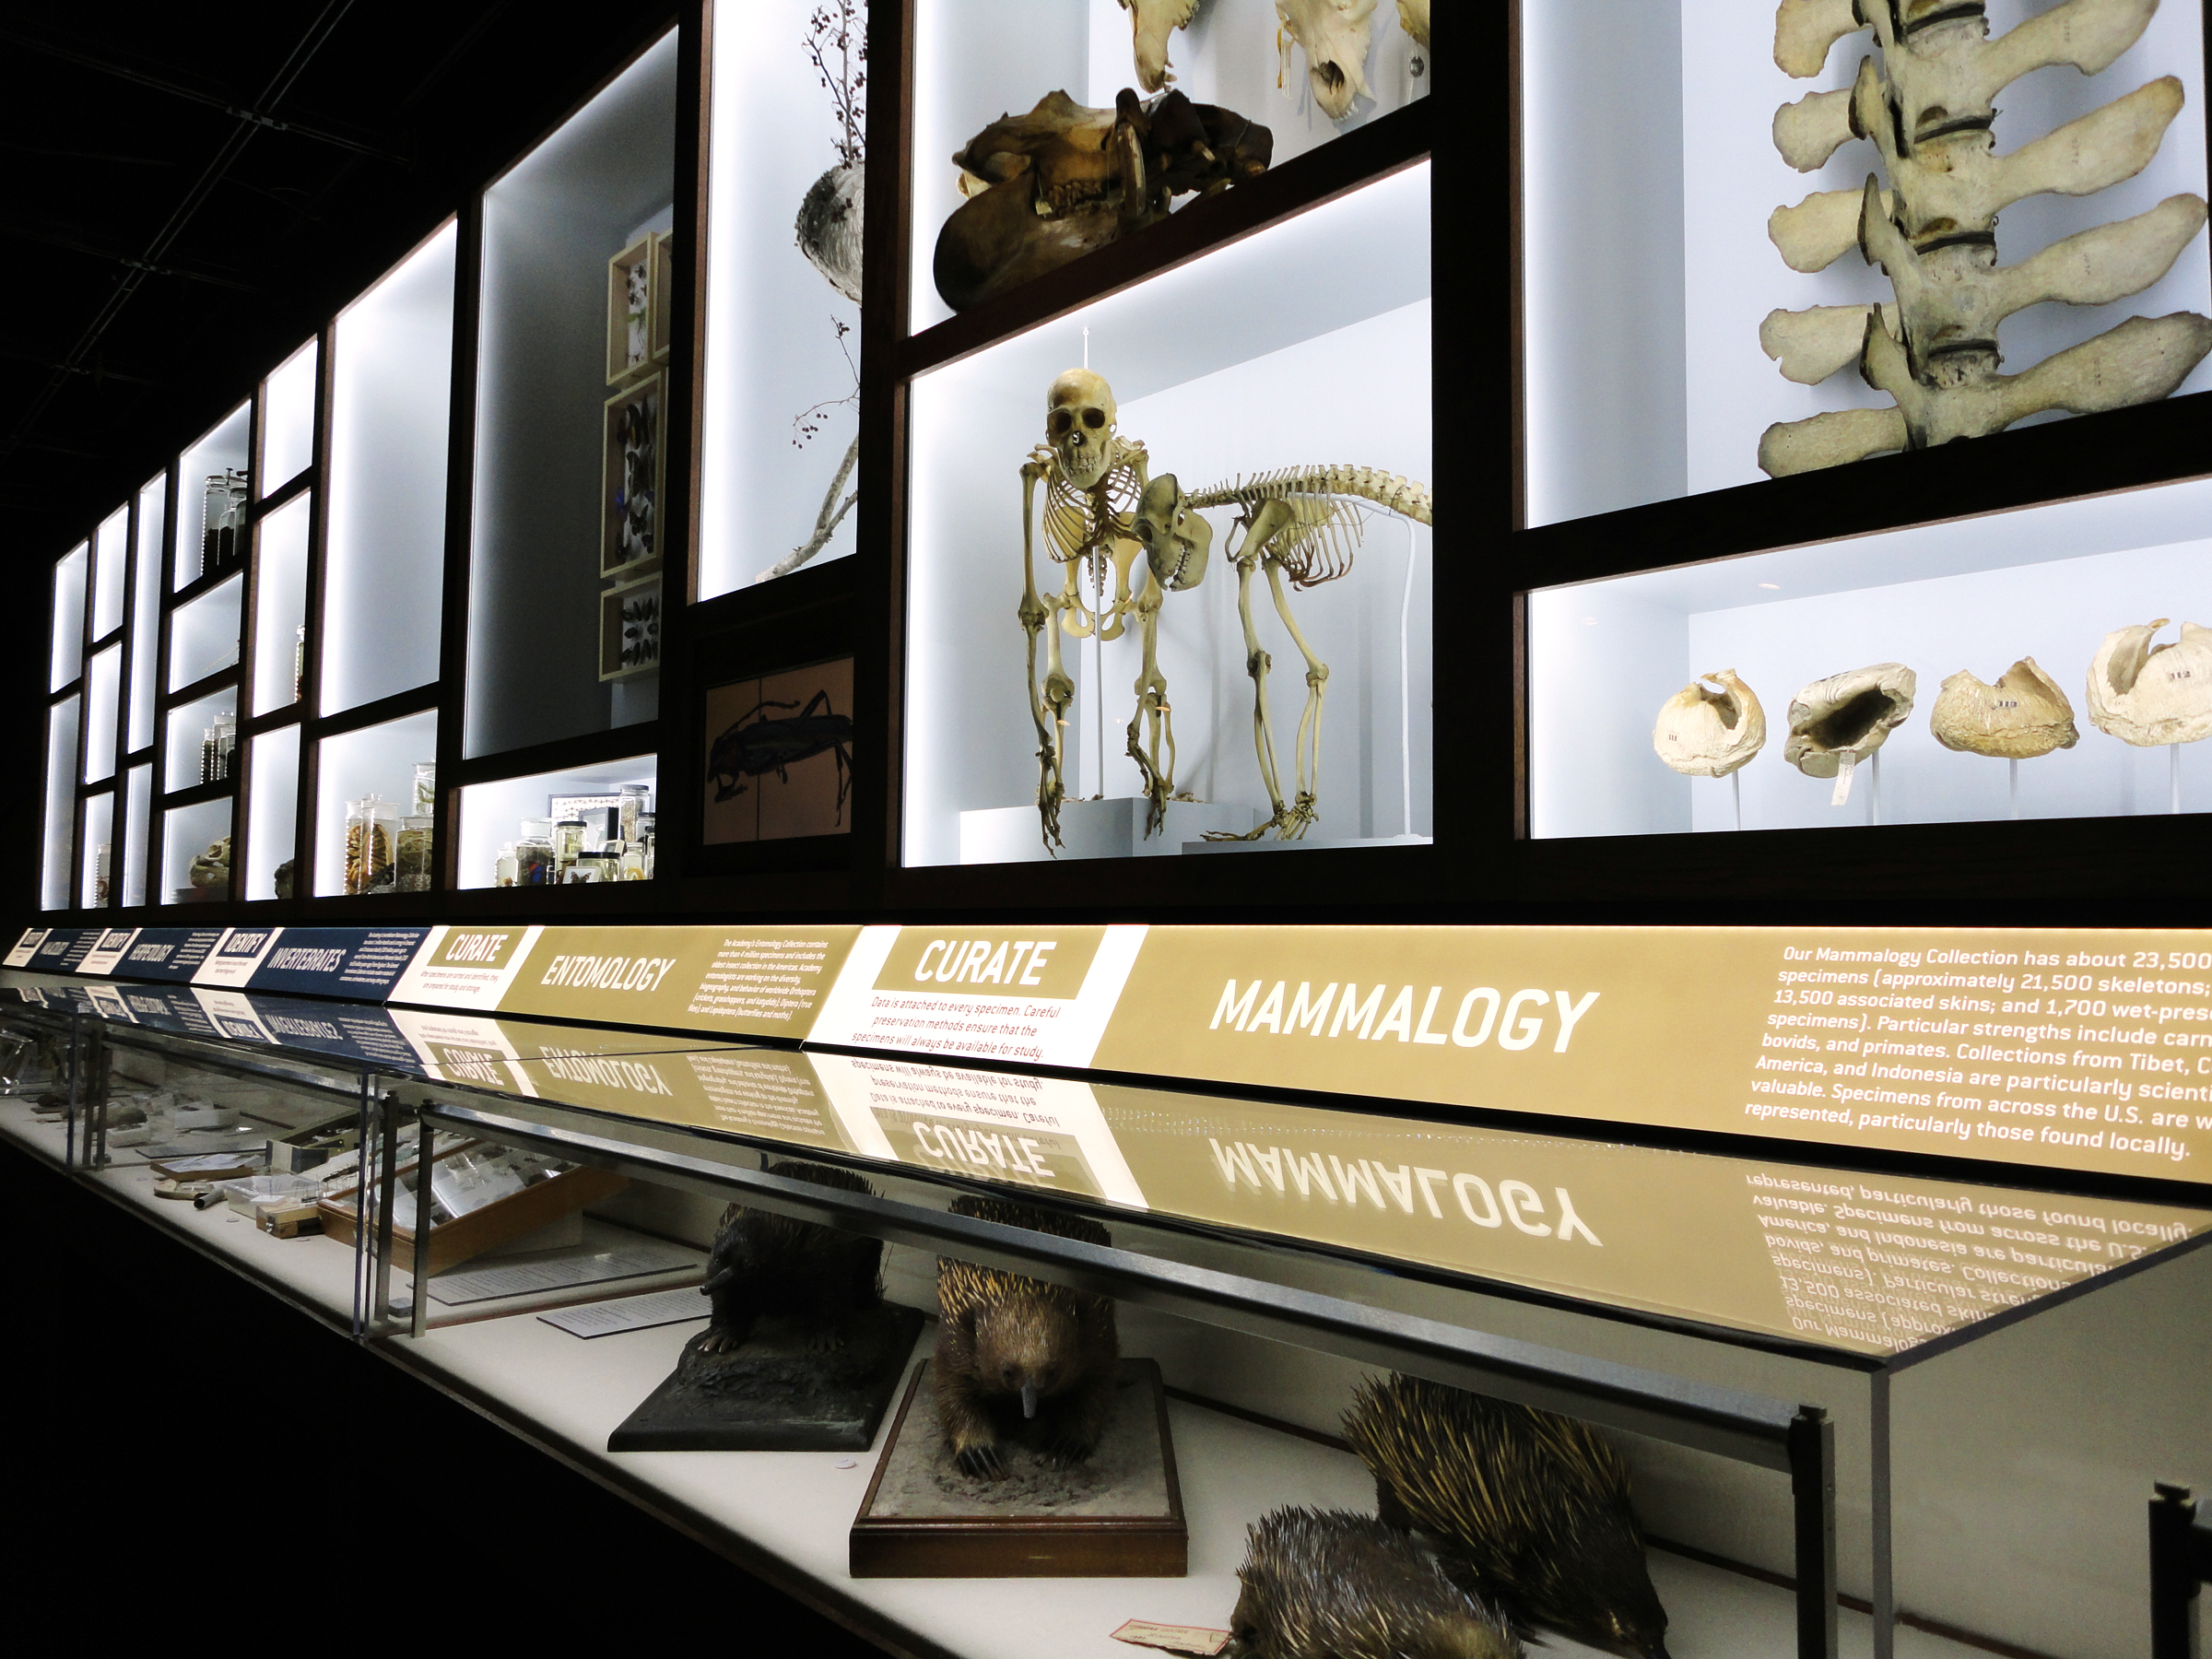 Just a few of the over 17 million specimens that the academy has to choose from are on display here.